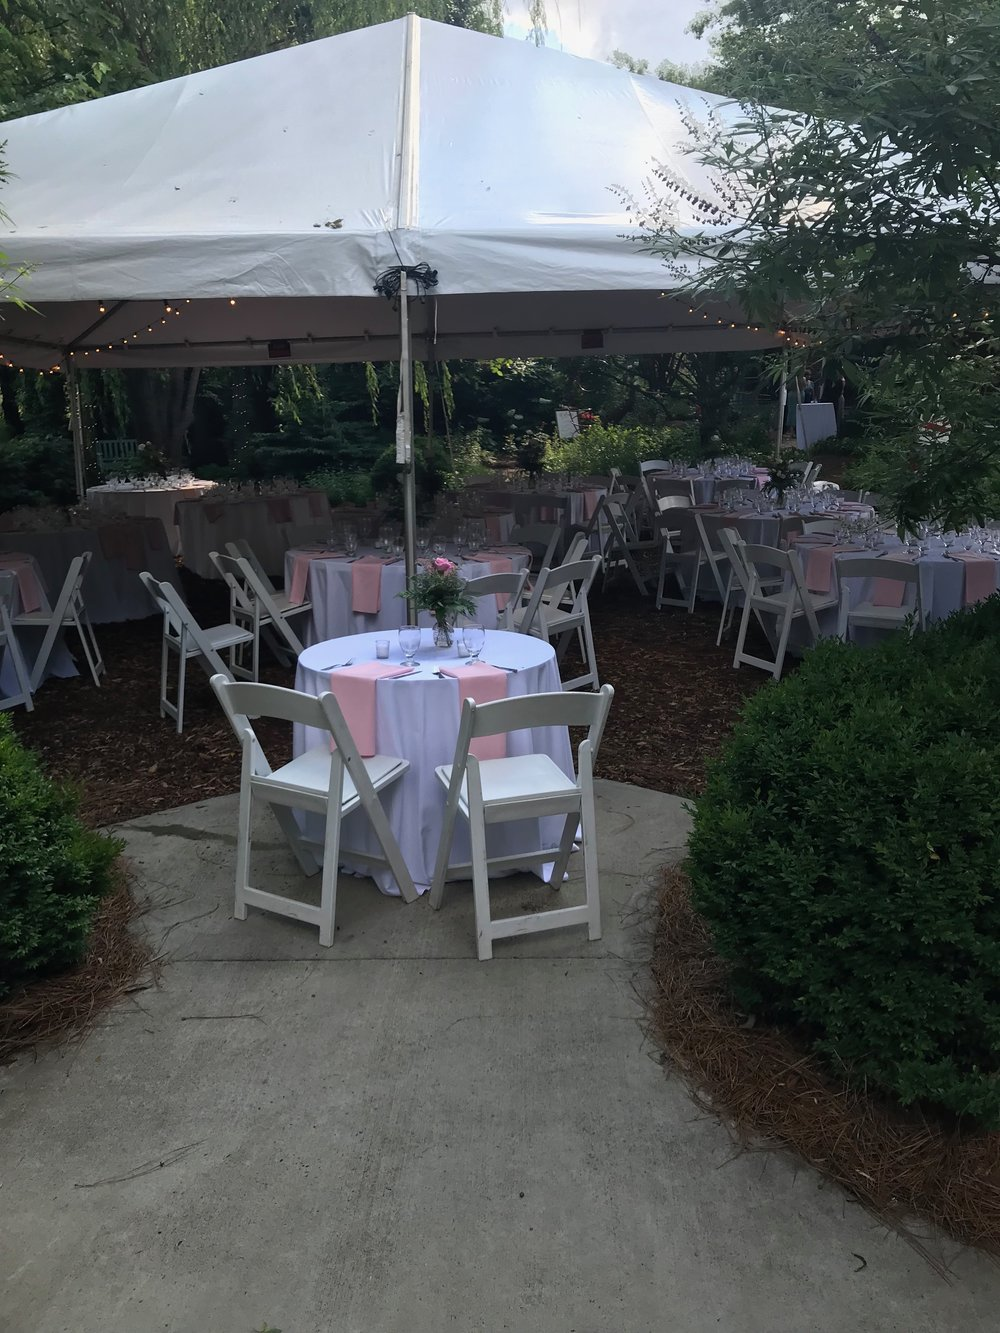 We expected rain, so the tables were canopied. Fortunately we only got a few sprinkles early in the evening!